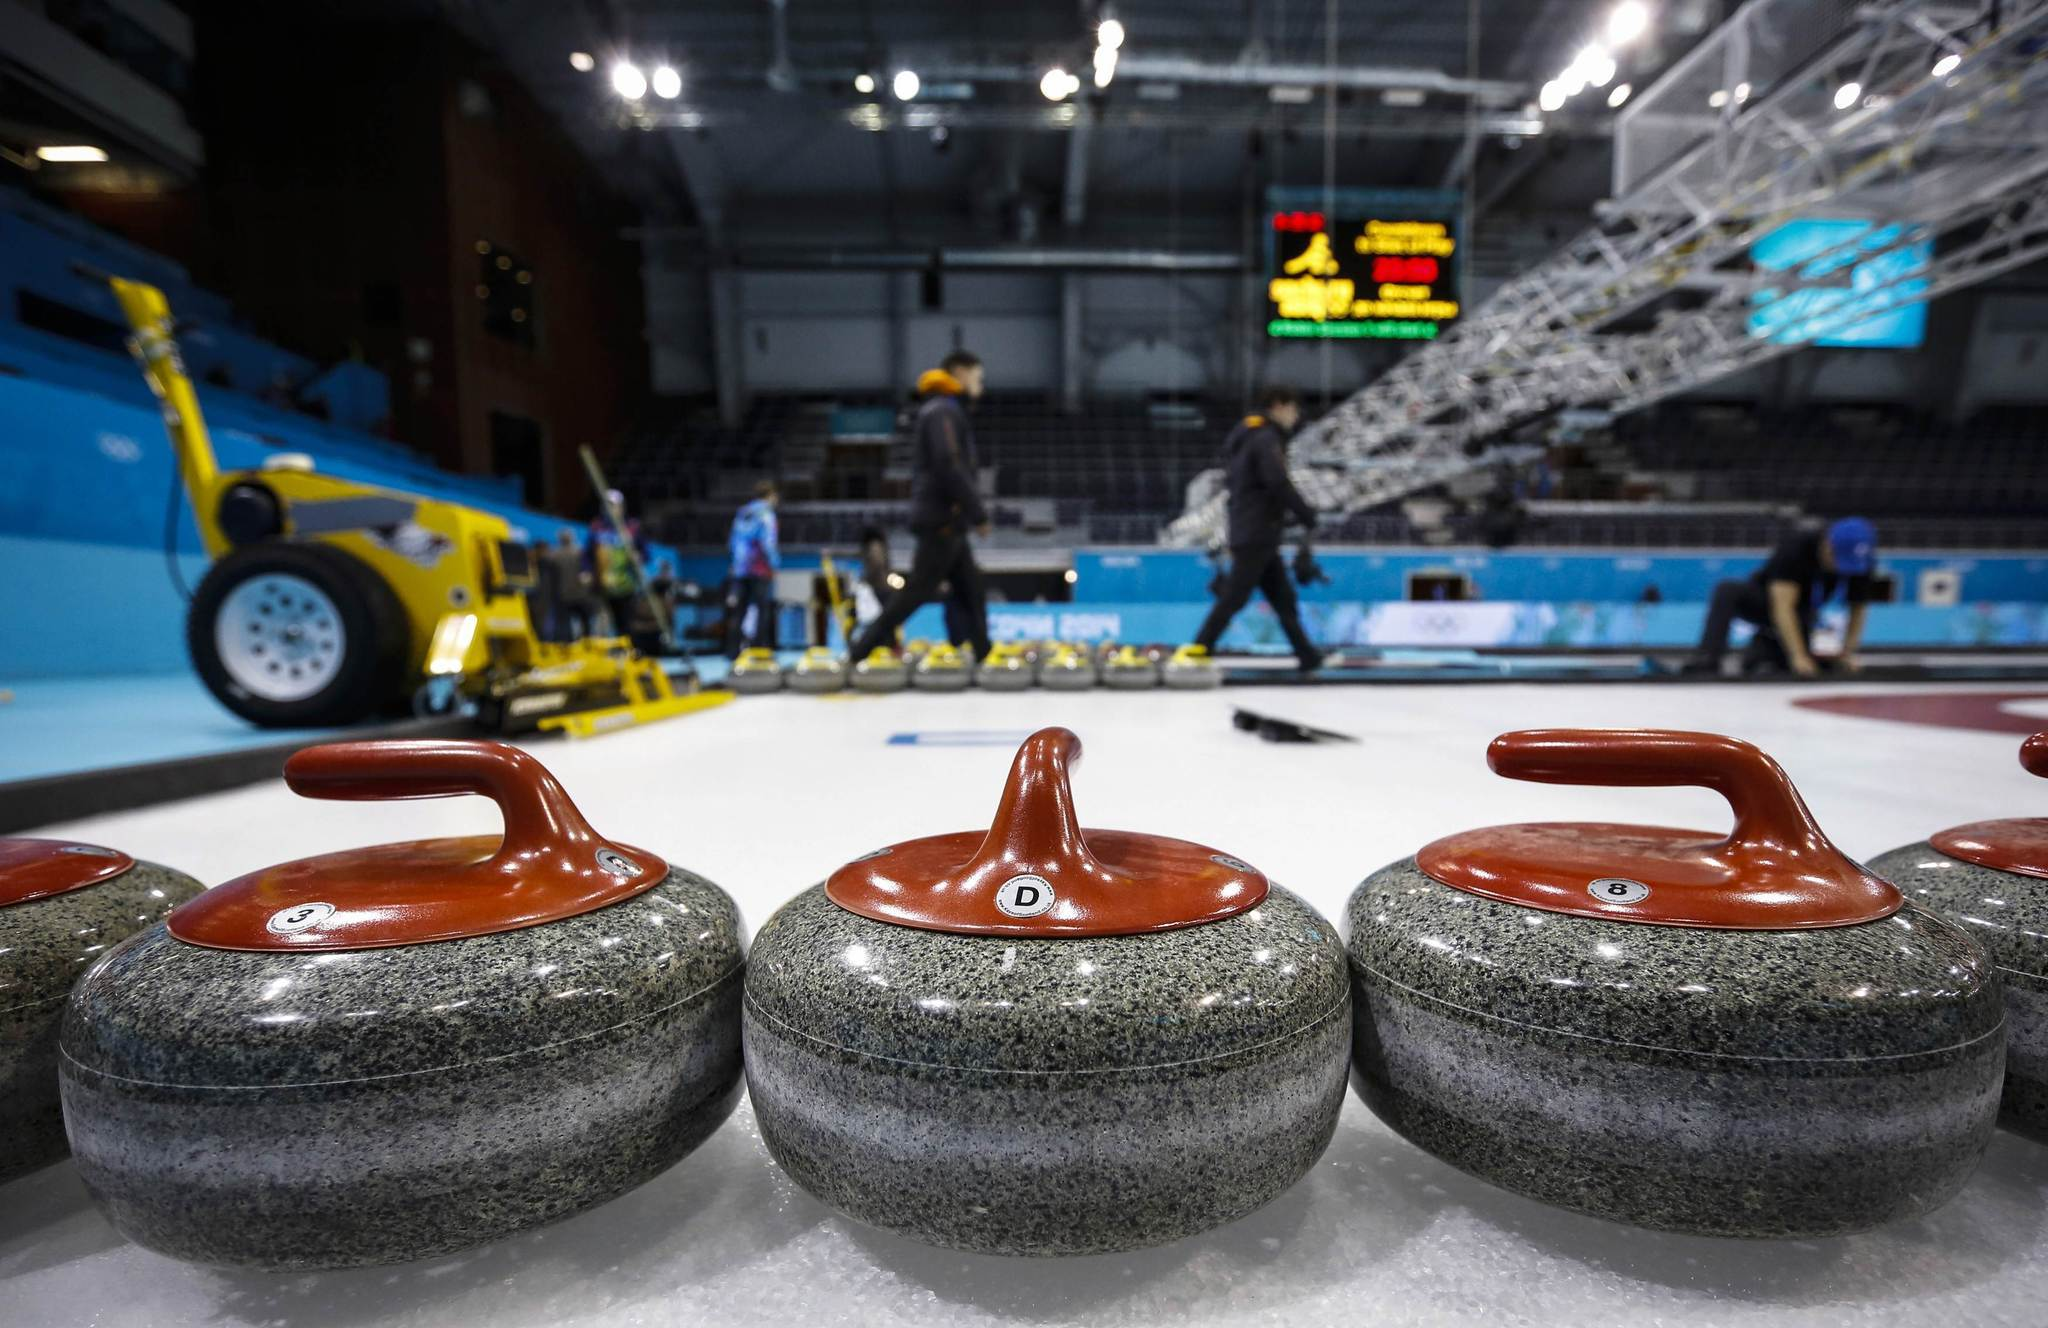 Workers set up the Ice Cube Curling Center as preparations continue for the 2014 Sochi Winter Olympics. (Mark Blinch/Reuters Photo)